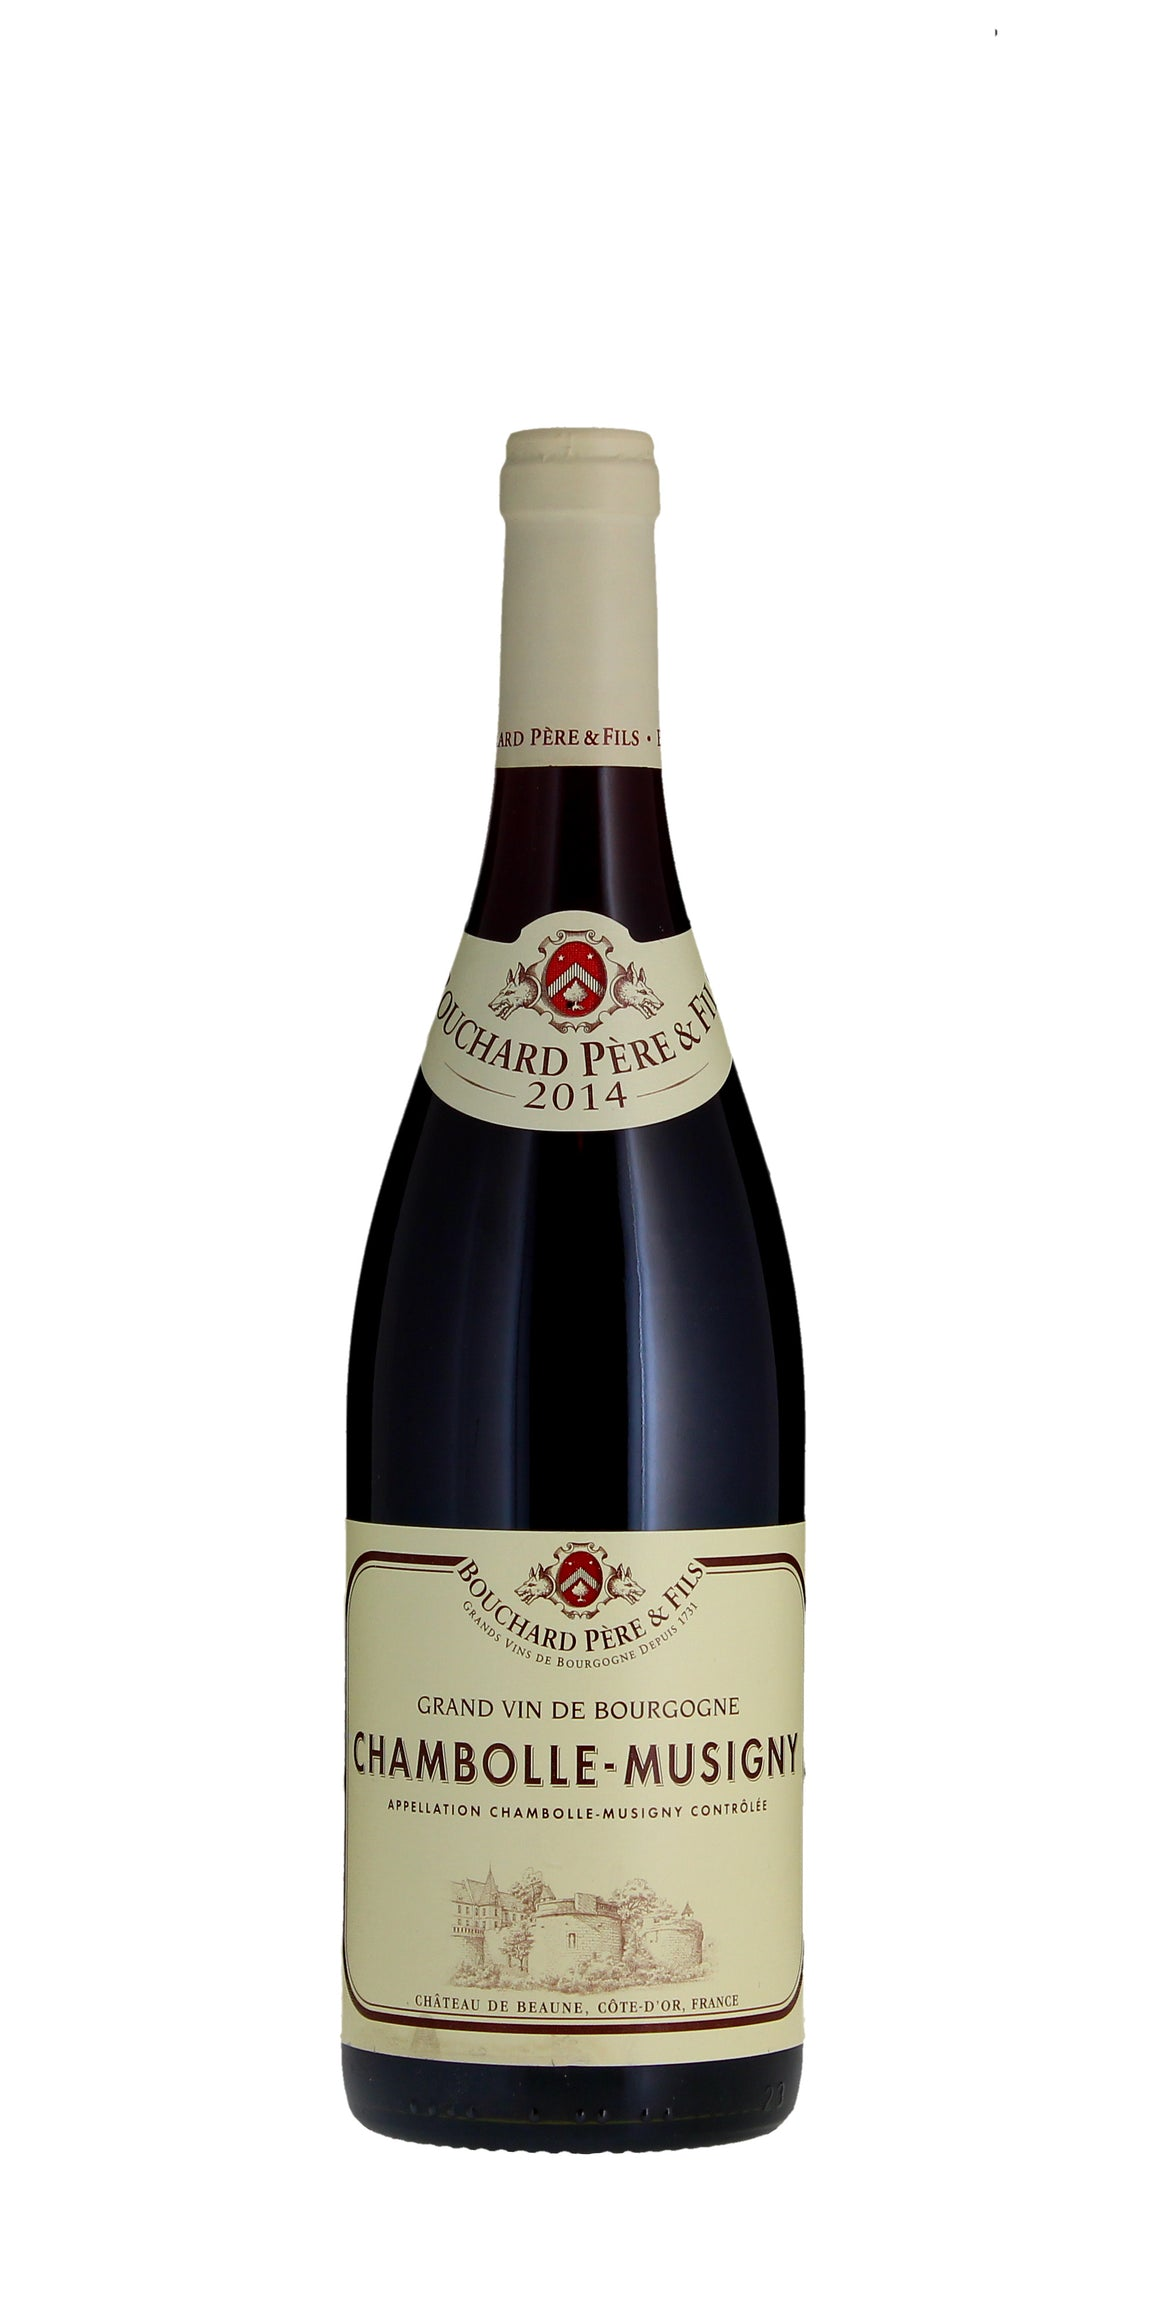 Bouchard Pere & Fils Chambolle-Musigny 2014